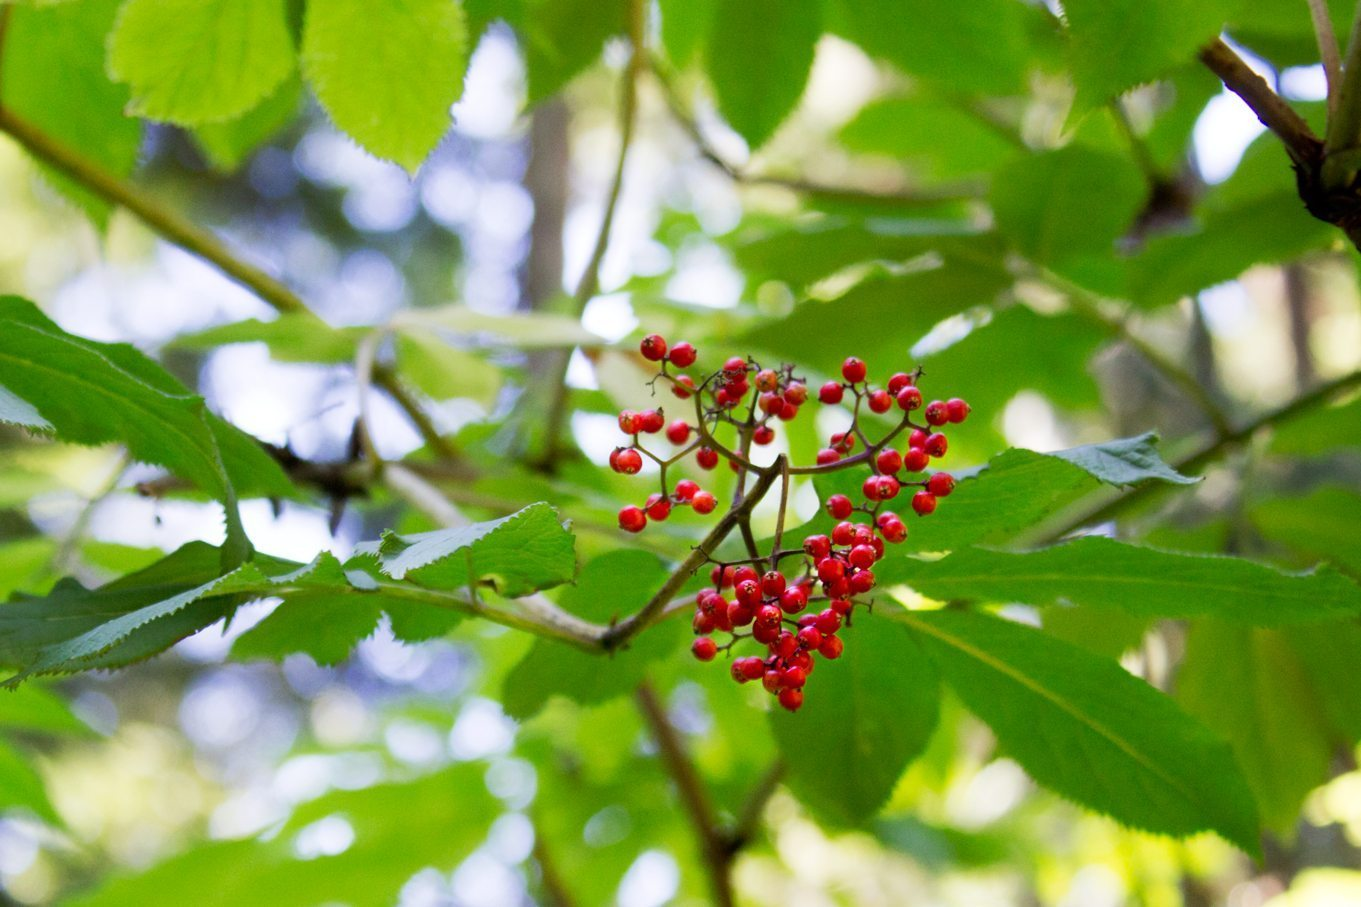 elderberry - foraging for medicinal plants in the wild